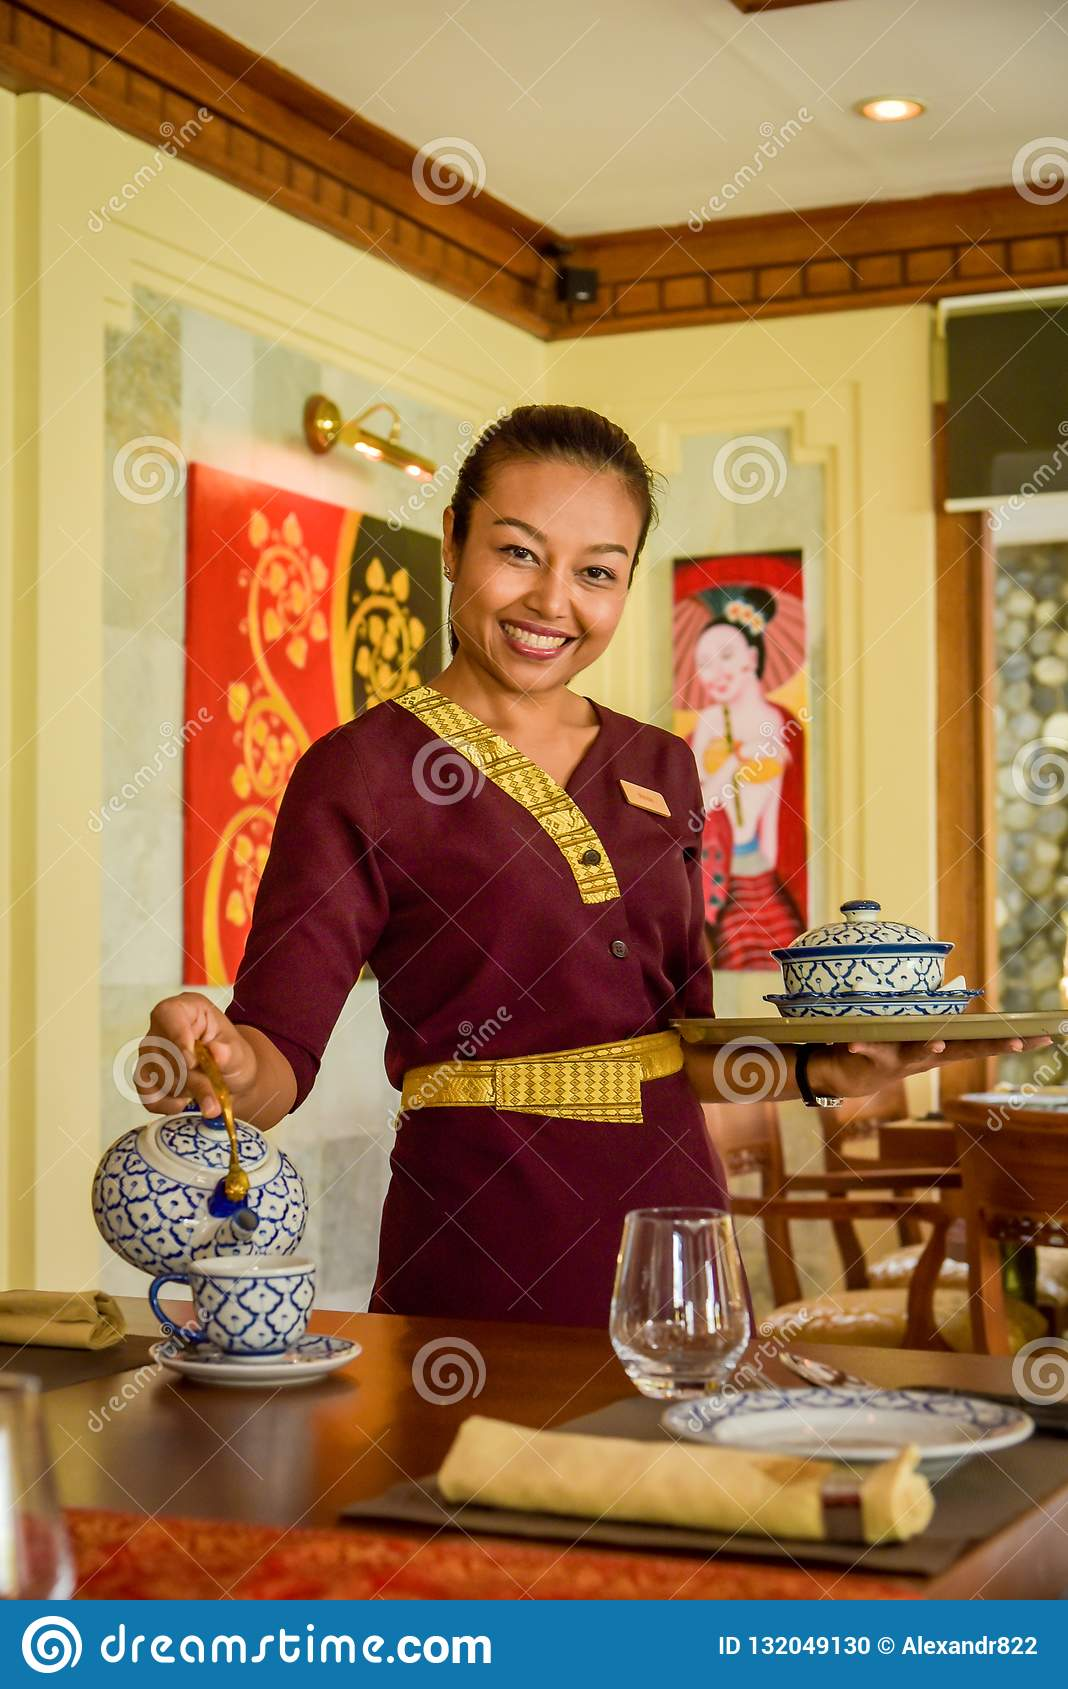 Waitress wearing uniform in the thai restaurant serving tea with a smile